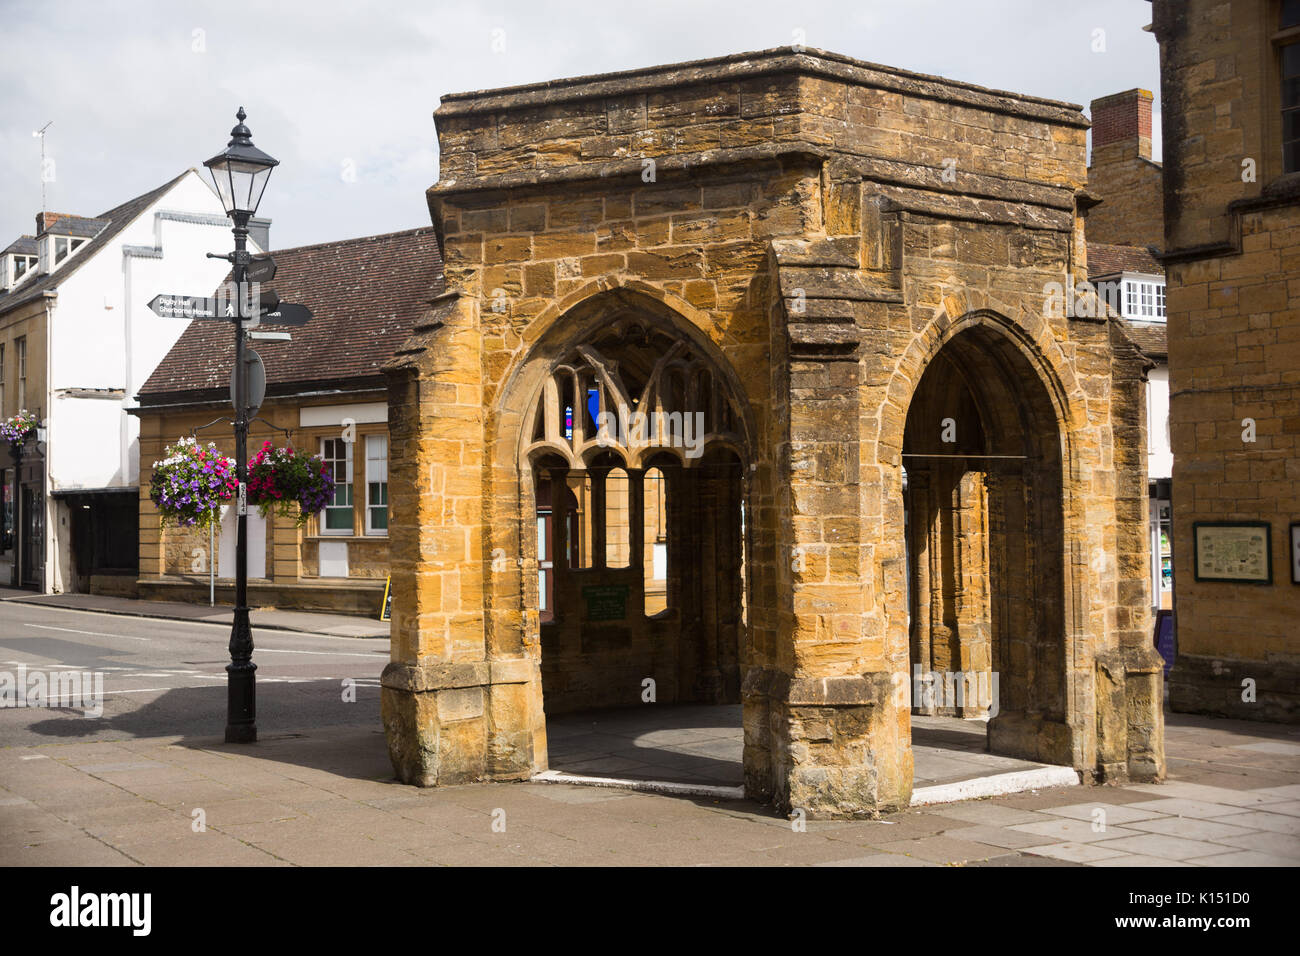 The Conduit old hexagonal stone shelter structure (scheduled ancient monument early16th Century) off Cheap Street in Sherborne town centre, Dorset, UK - Stock Image